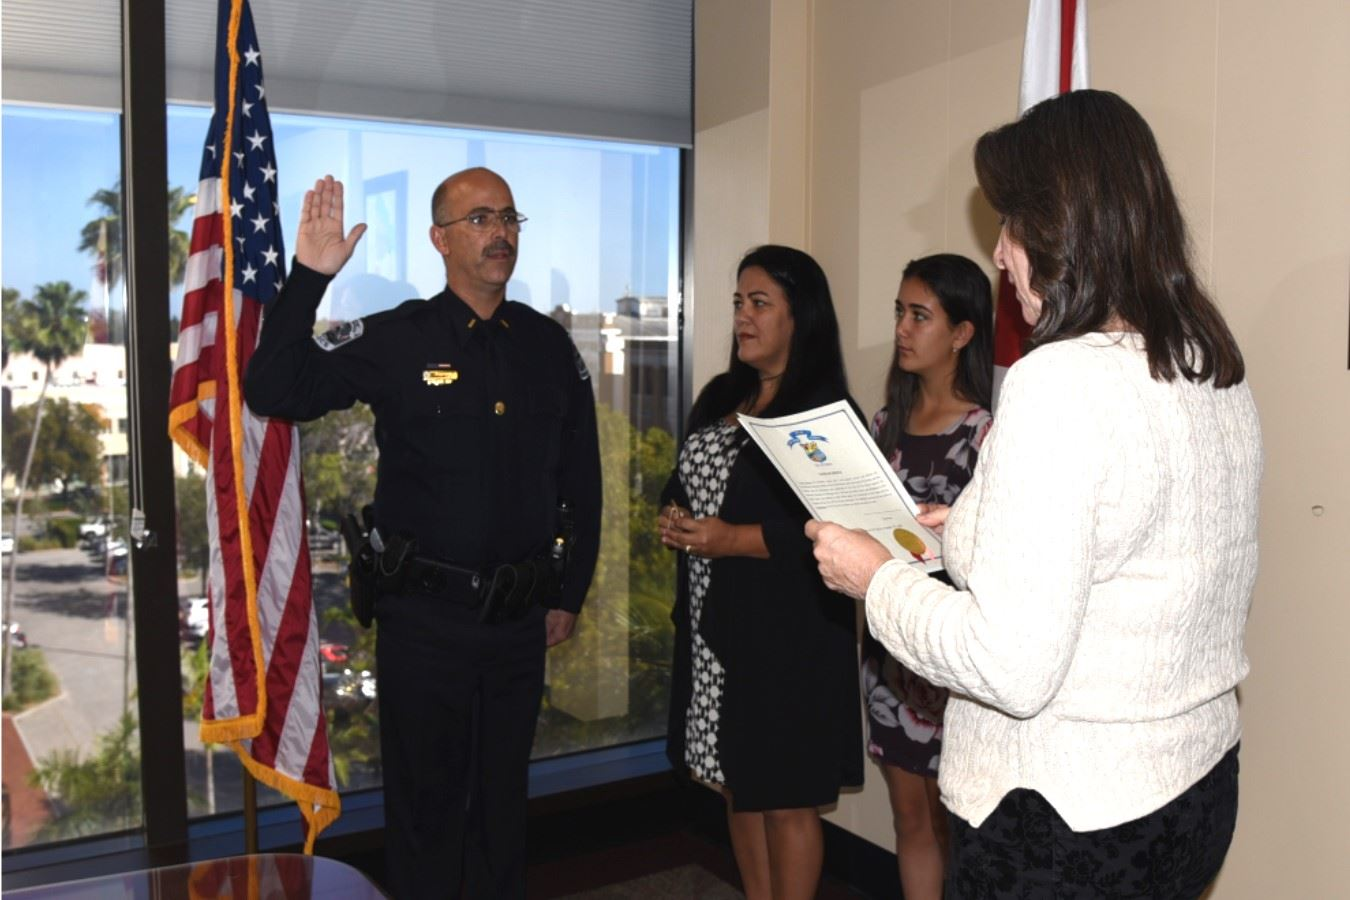 Lt. Ramos Swearing-in